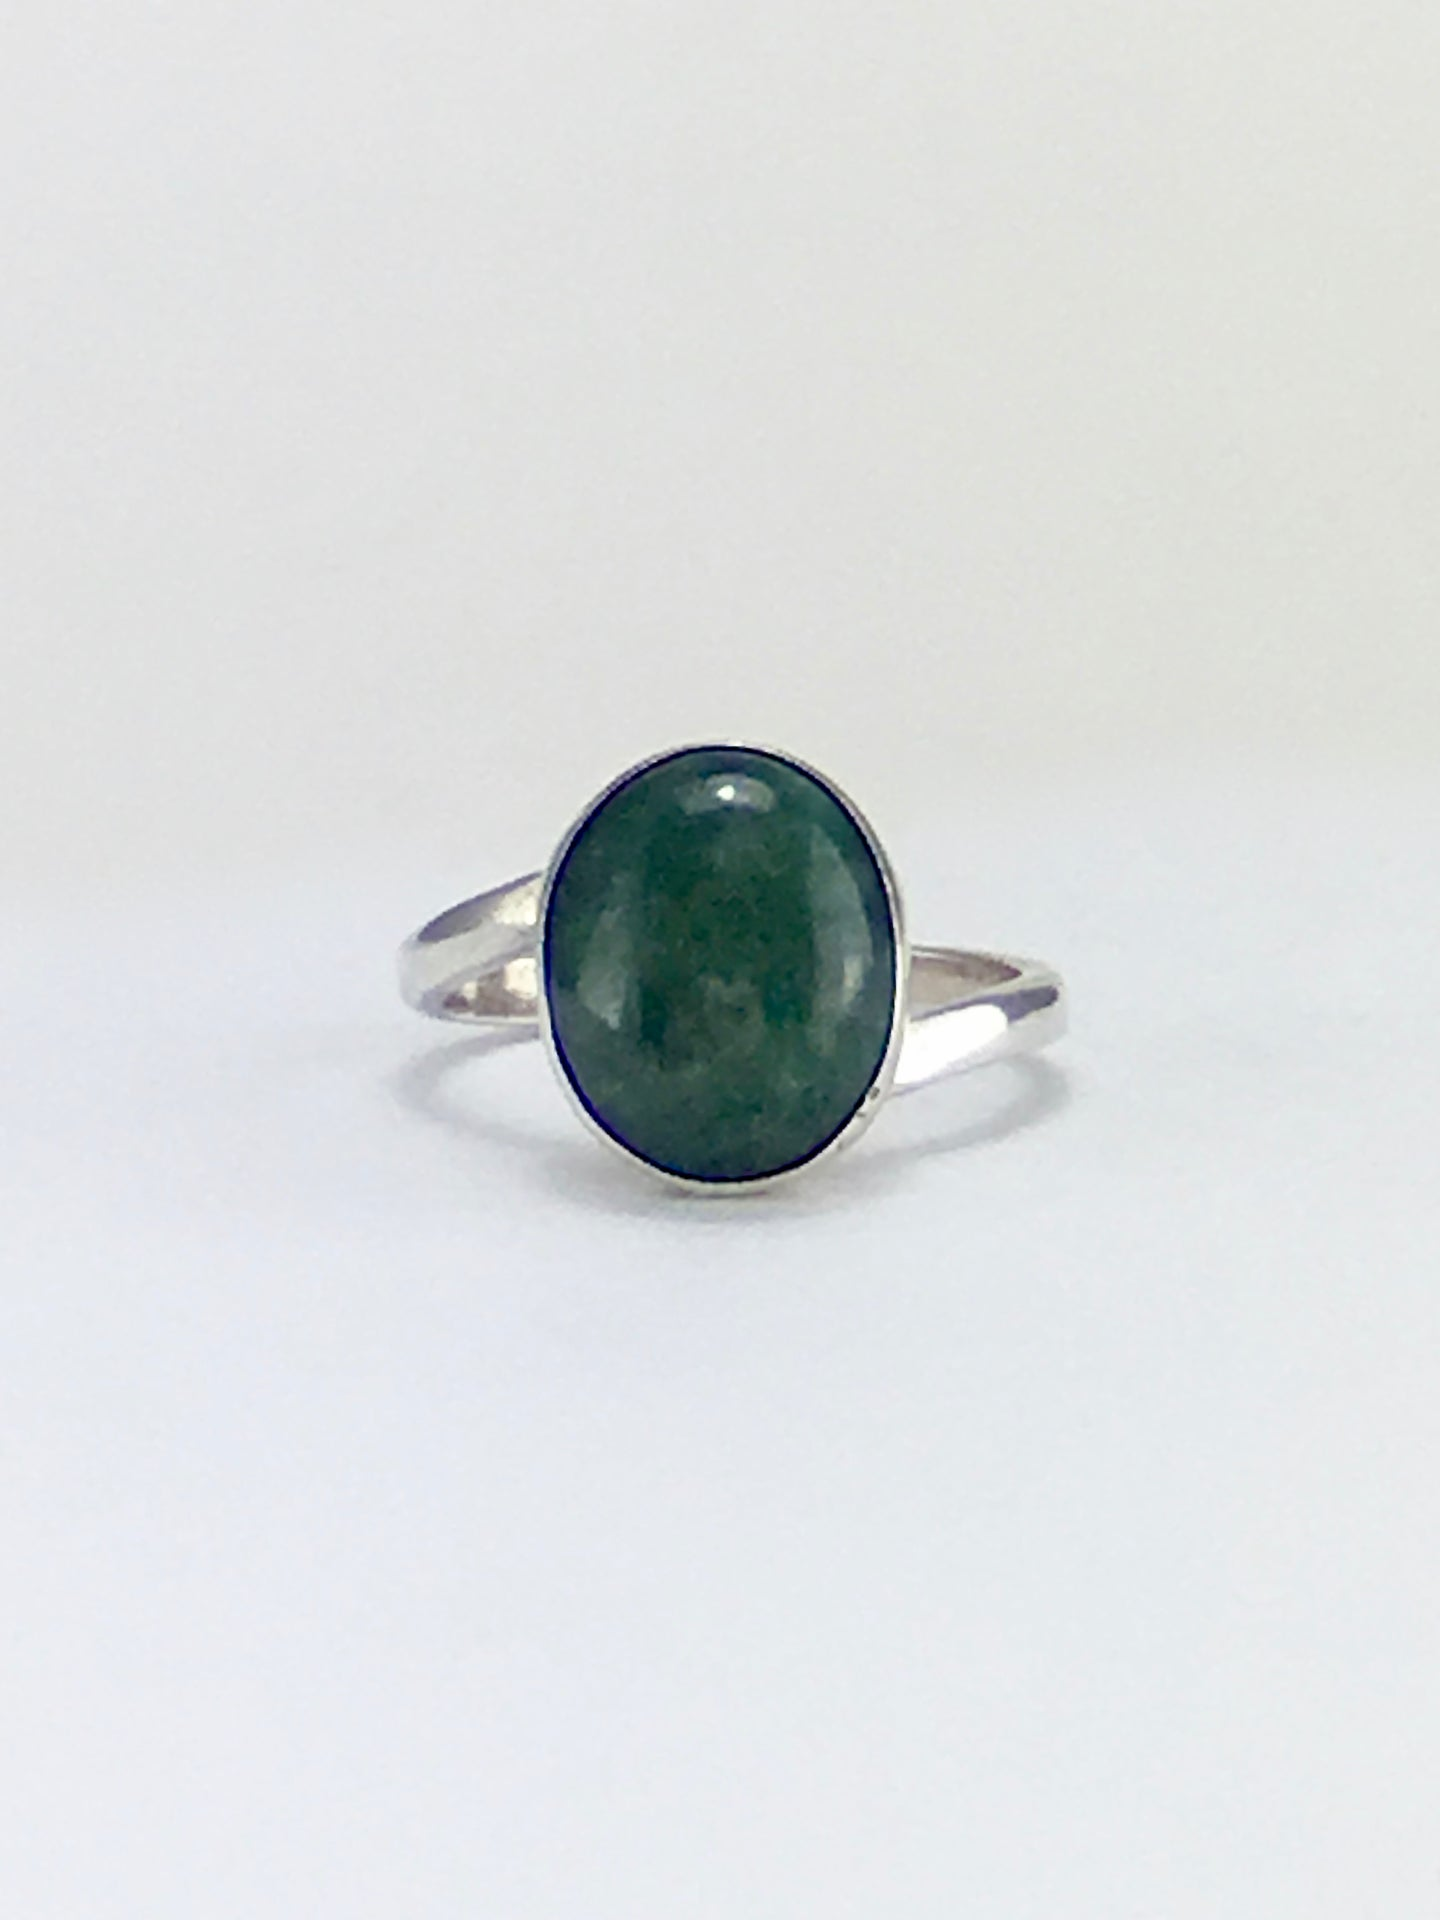 Twisted elegance dark green gemstone jade oval cocktail ring